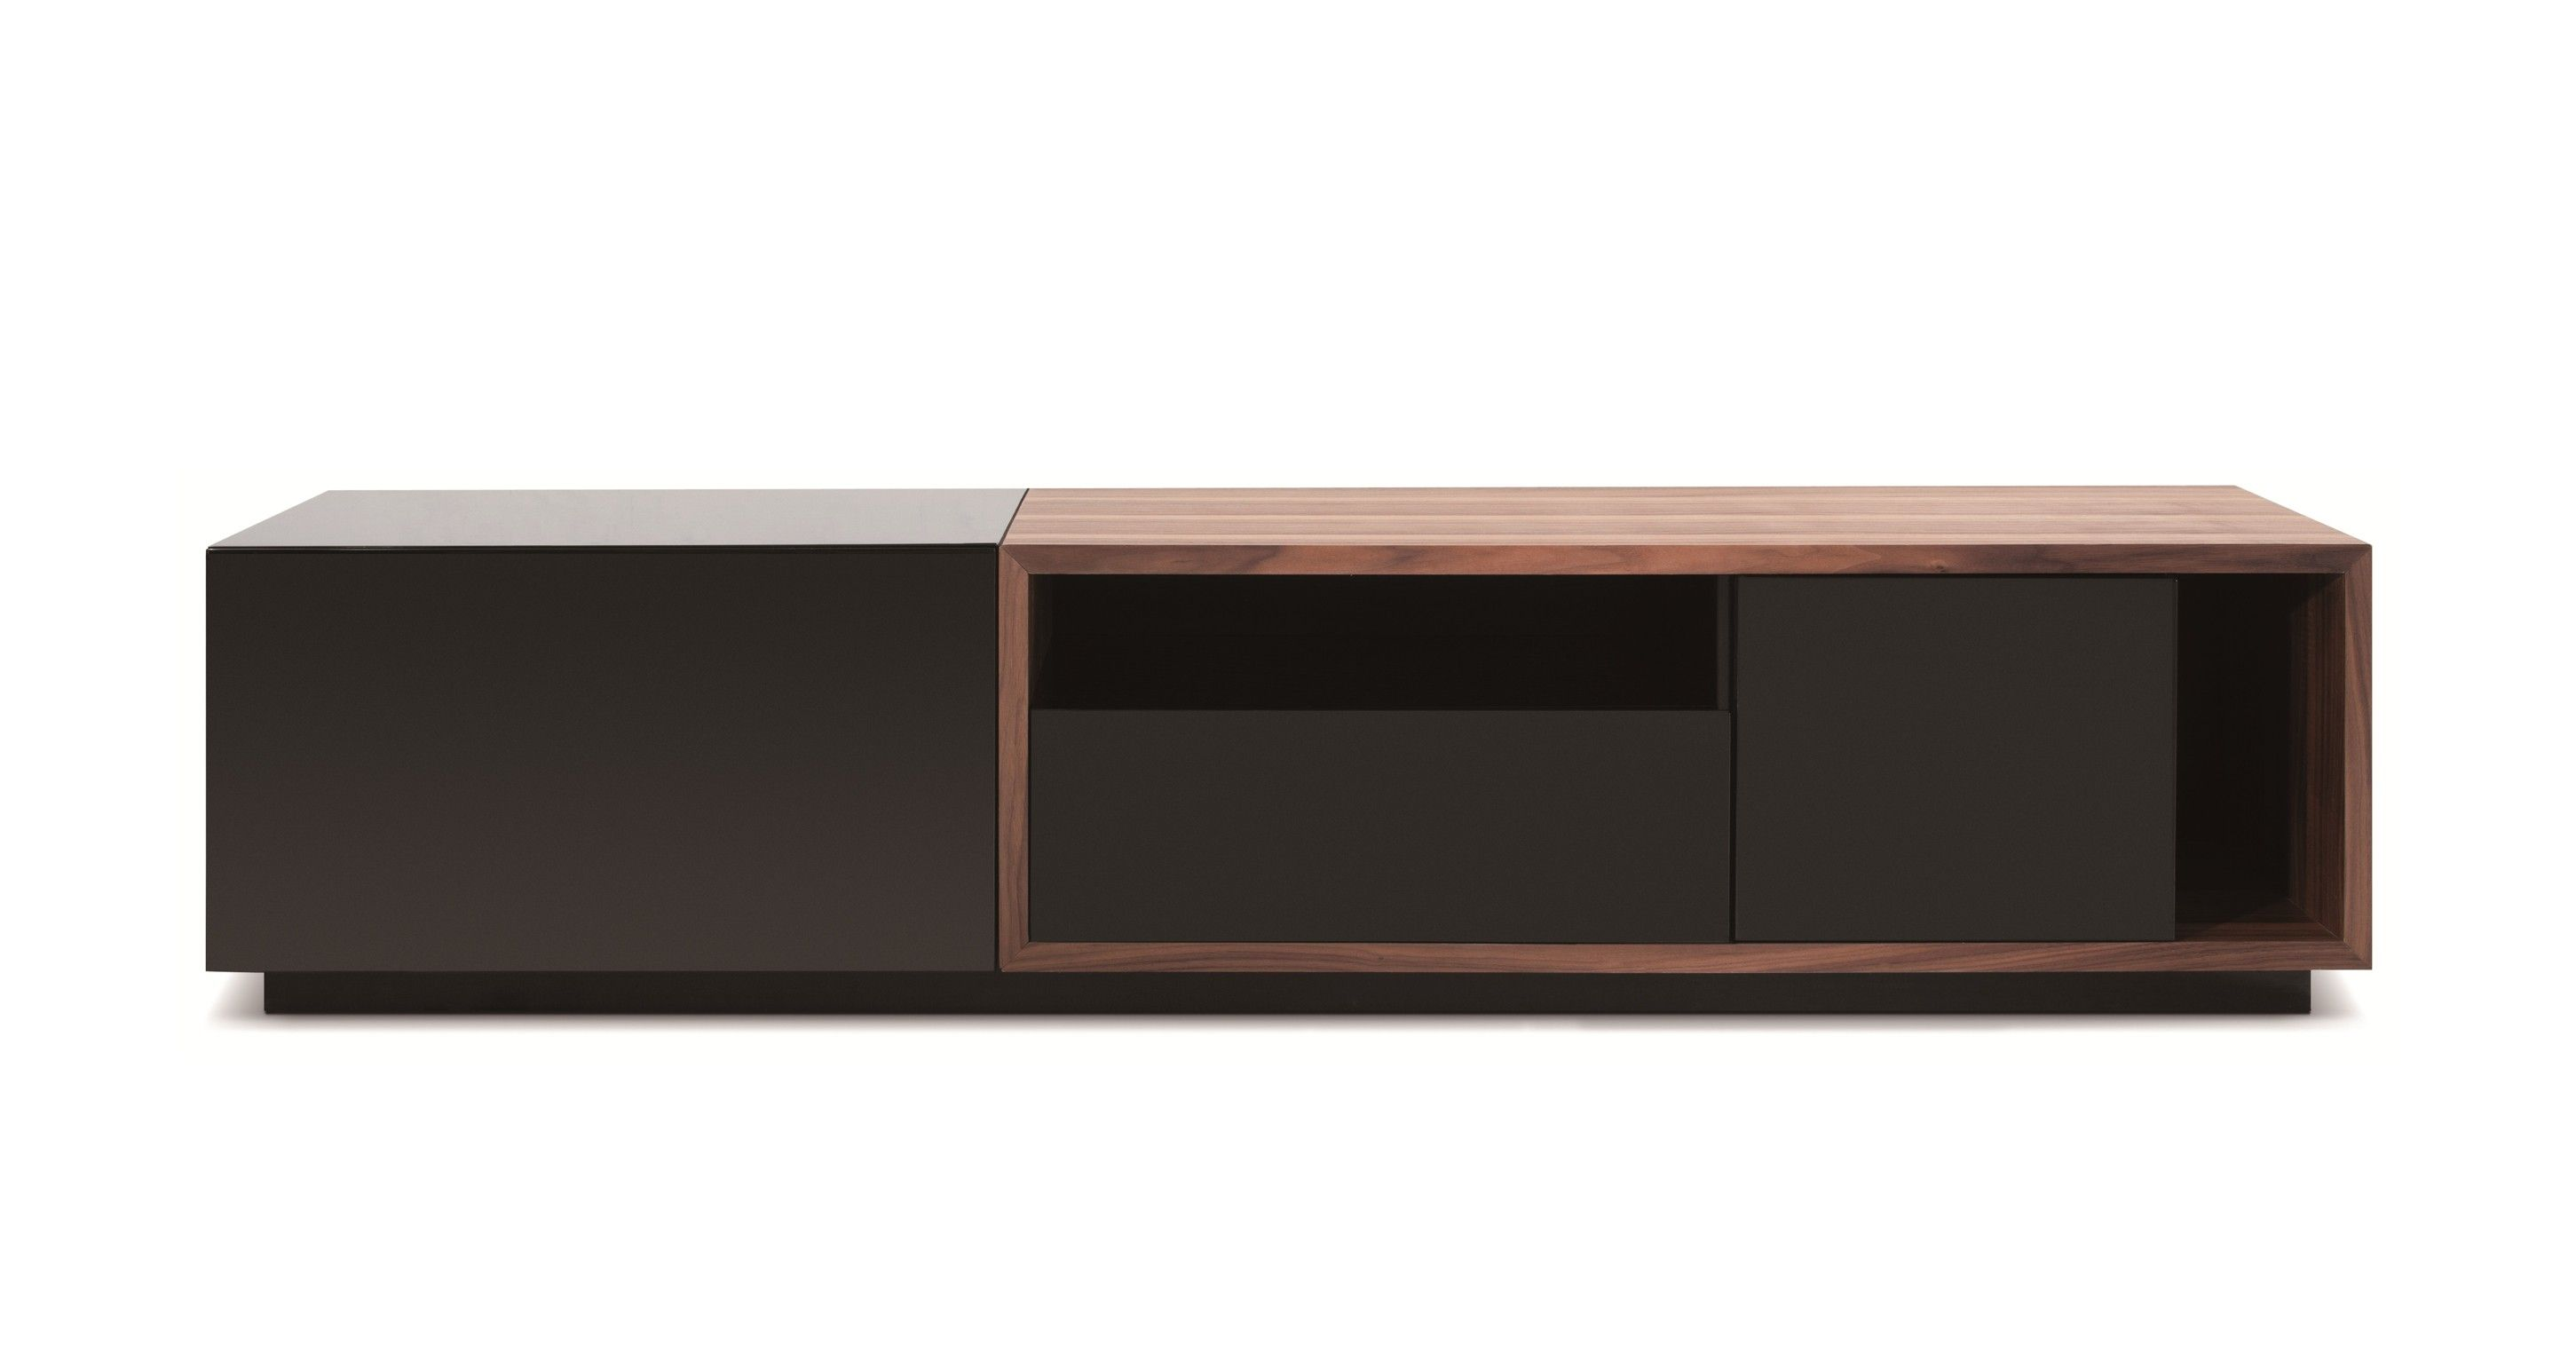 Modern Tv Stands With Glass Door Tv Stand You Can Put It In The Living Room Tv Stand With Glass Doors Modern Tv Stand Tv Stand Wood